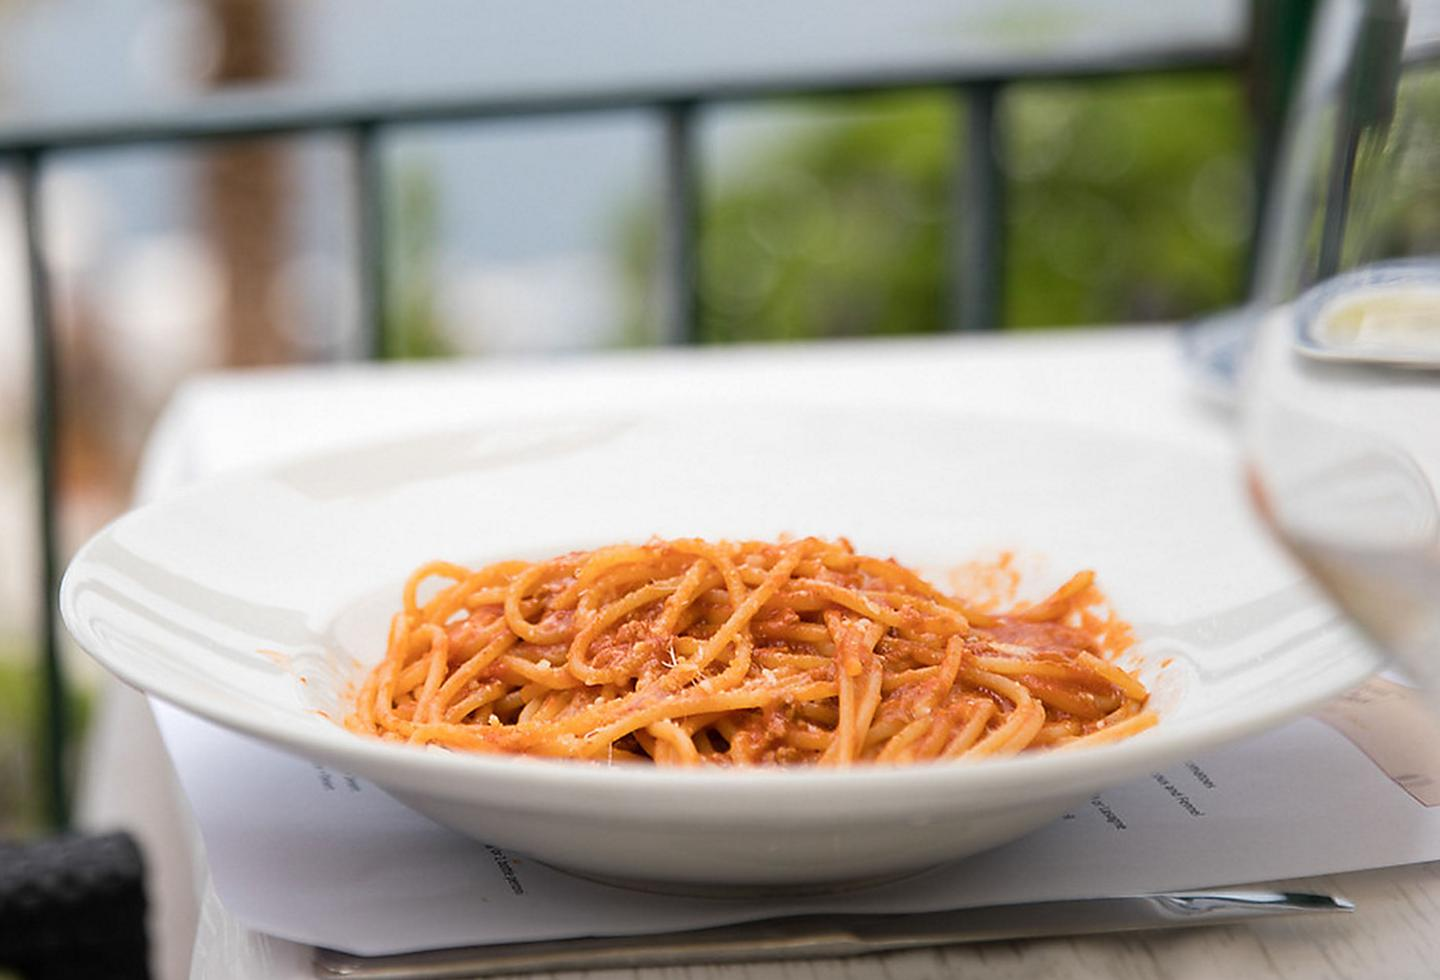 Italy Spaghetti with Tomato Sauce and Grated Cheese